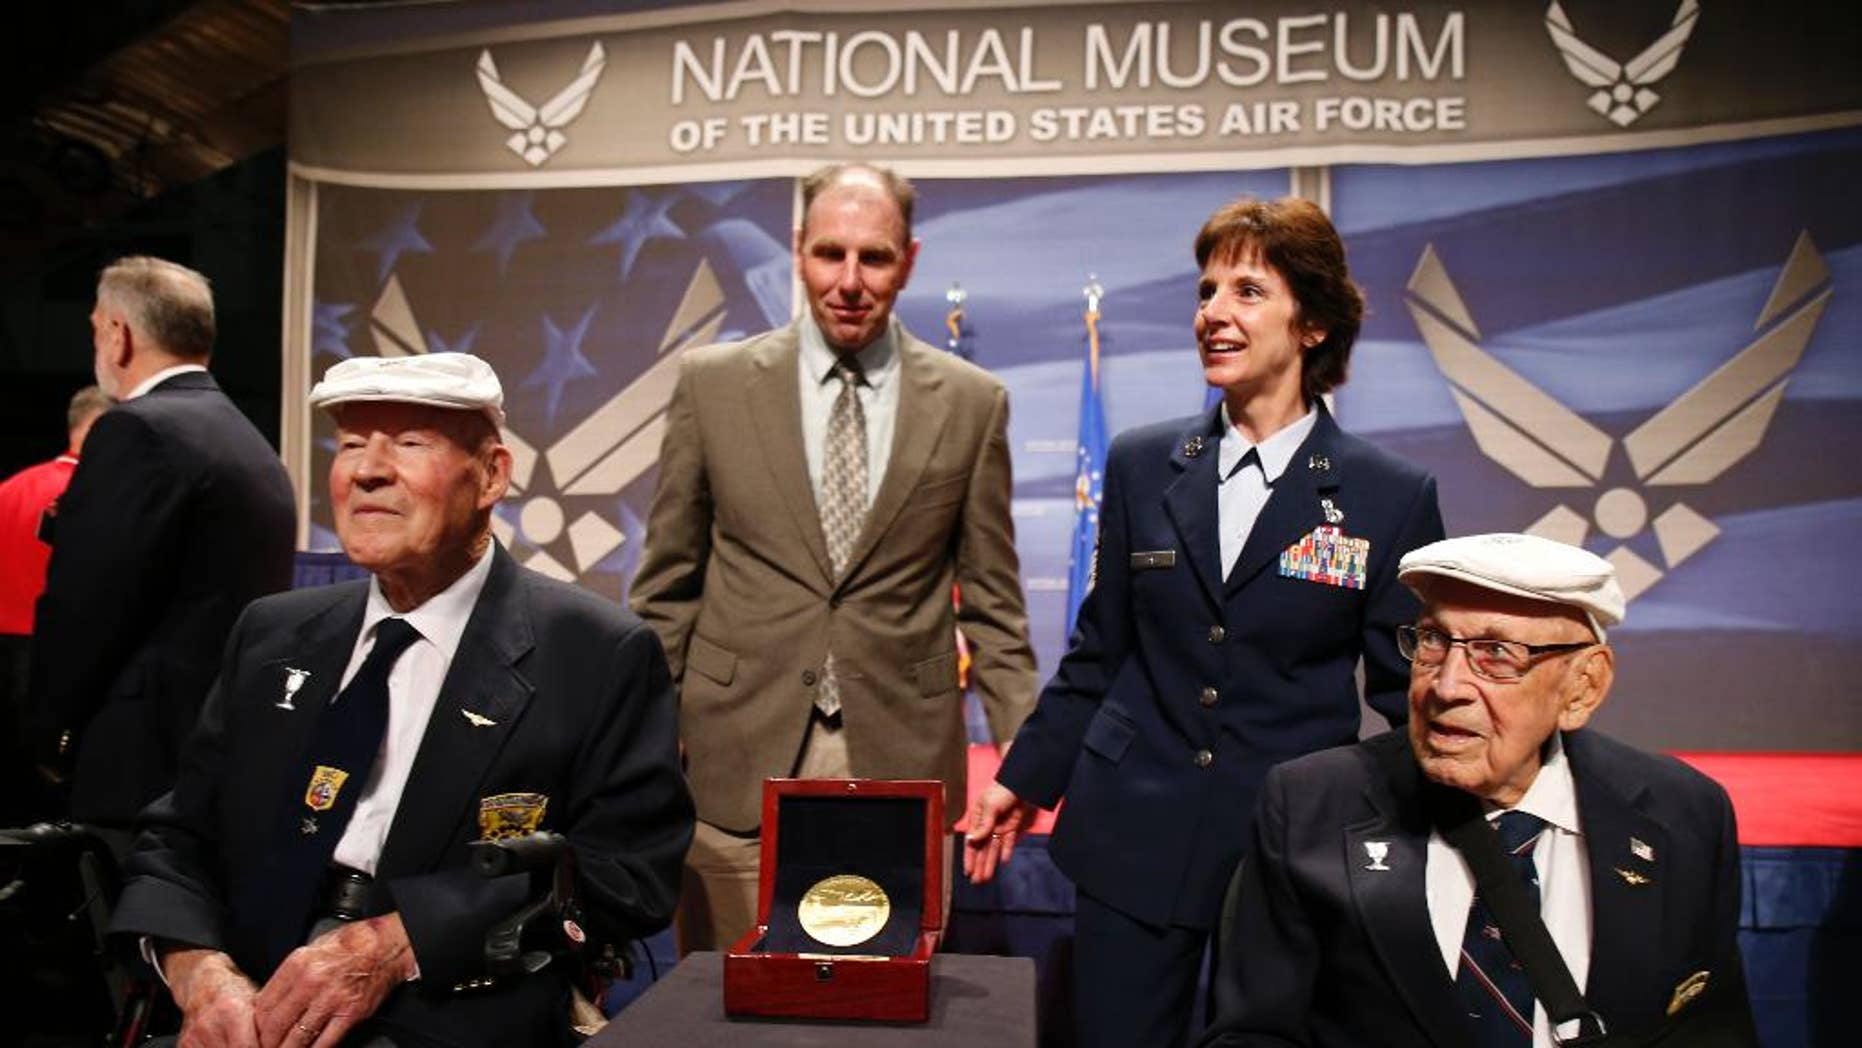 """April 18, 2015: Staff Sgt. David Thatcher, front left, and Lt. Col. Richard """"Dick"""" Cole, right, pose for photos with Lt. Gen. John """"Jack"""" Hudson, rear left, Director National Museum of the United States Air Force, and Air Force Material Commander Gen. Janet C. Wolfenbarge"""